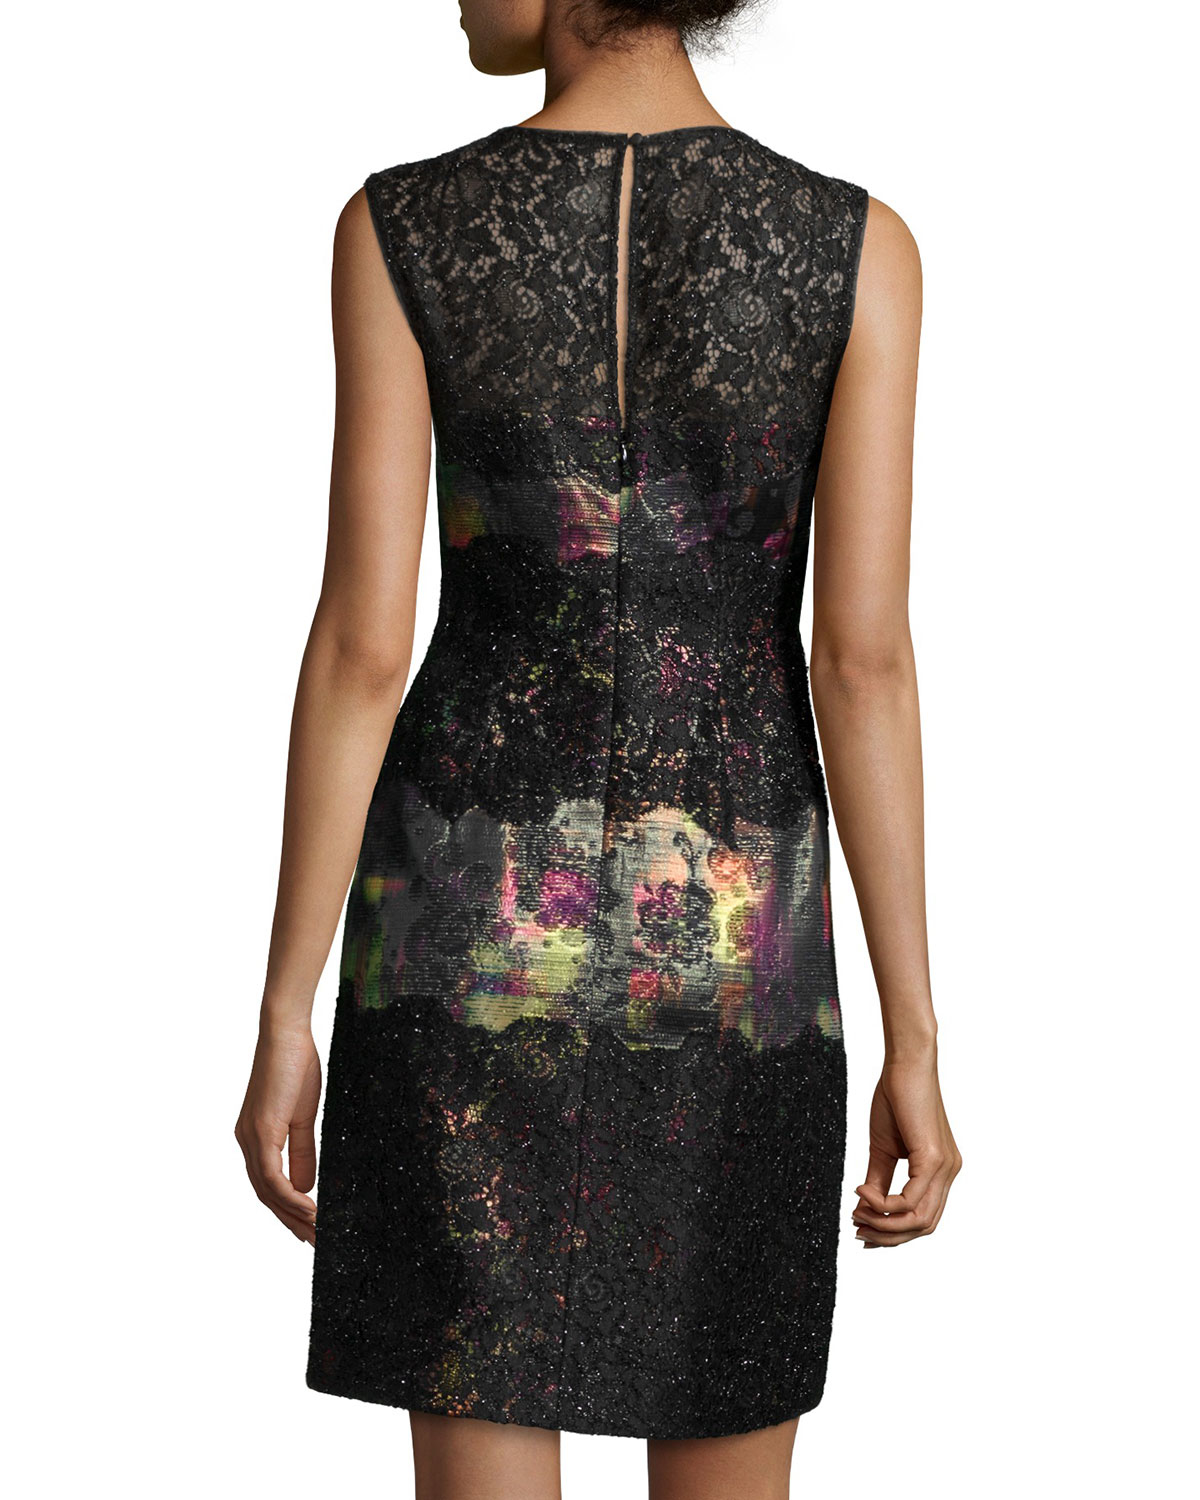 Lyst - Kay Unger Sleeveless Printed Lace Cocktail Dress in Black